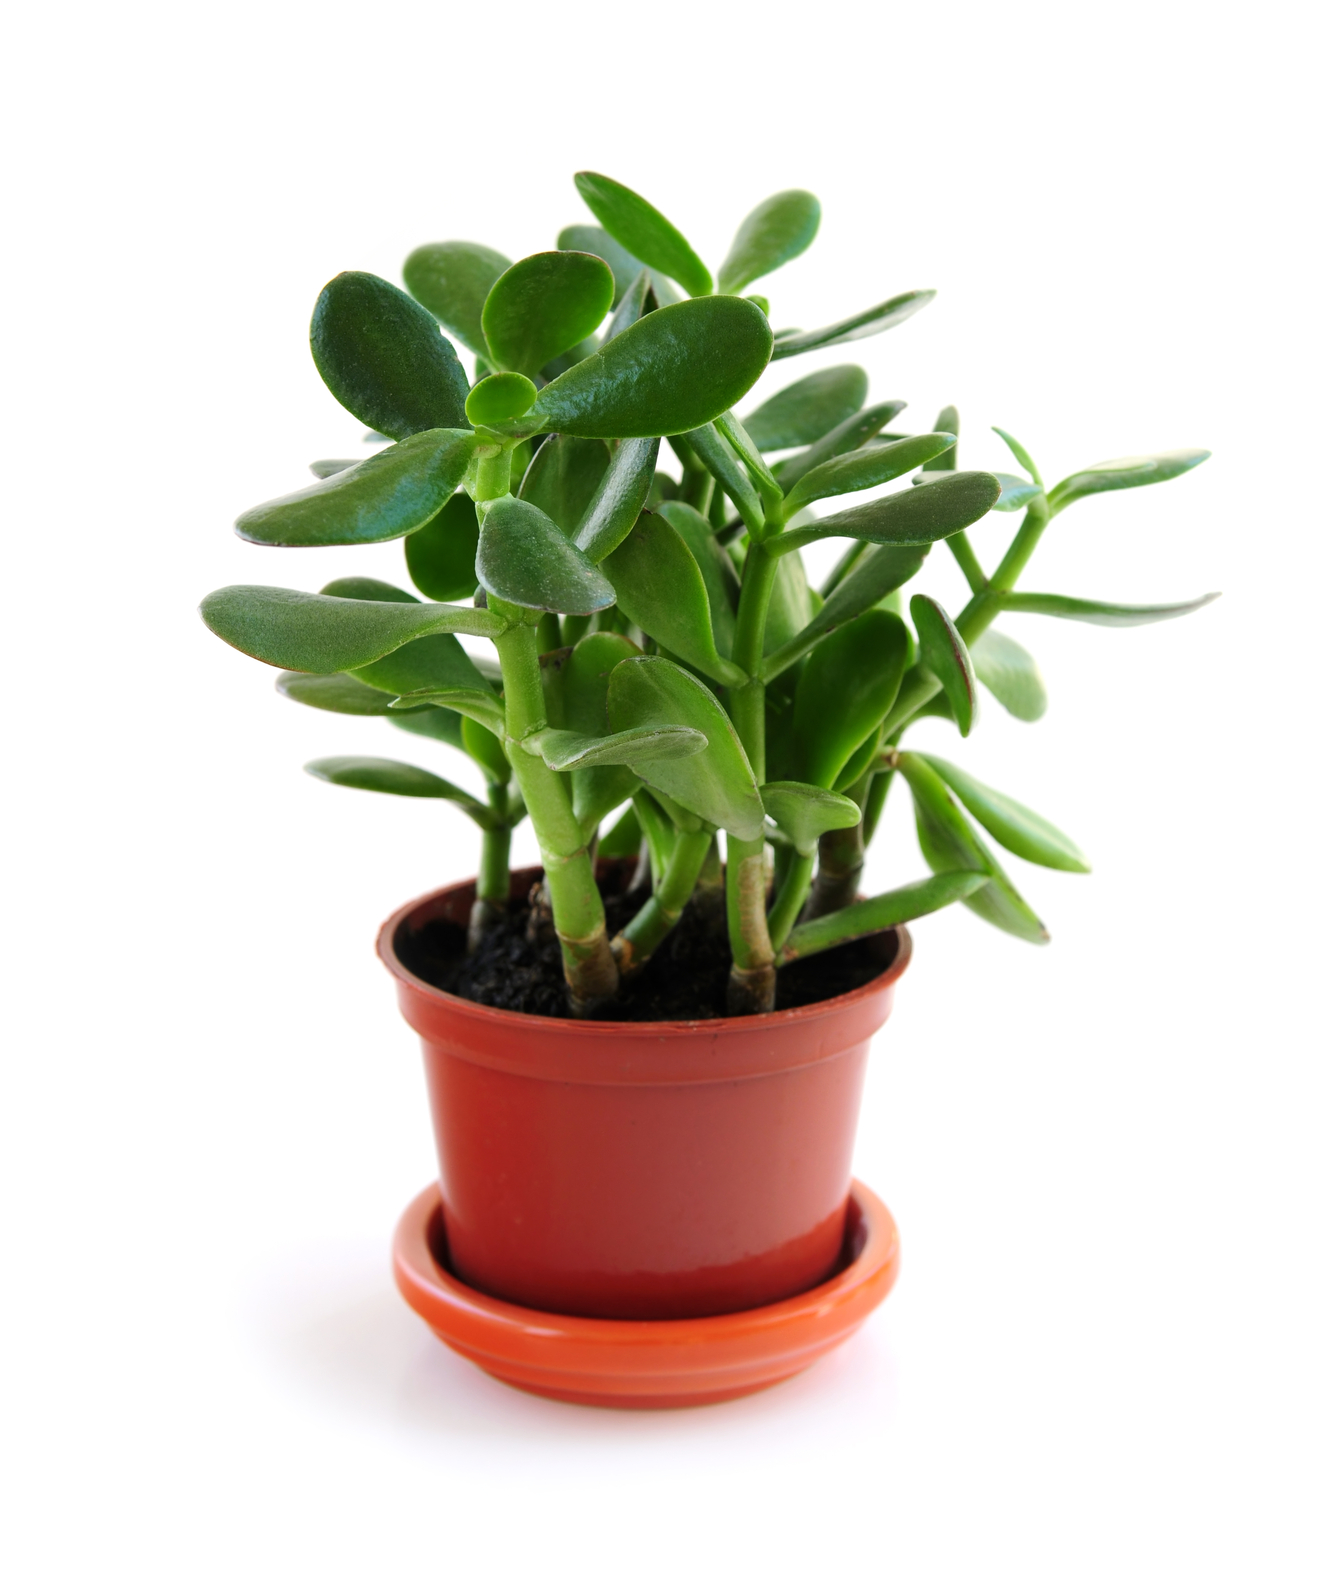 Easy Care Indoor Trees Jade Plants How To Plant Grow And Care For Jade Plants